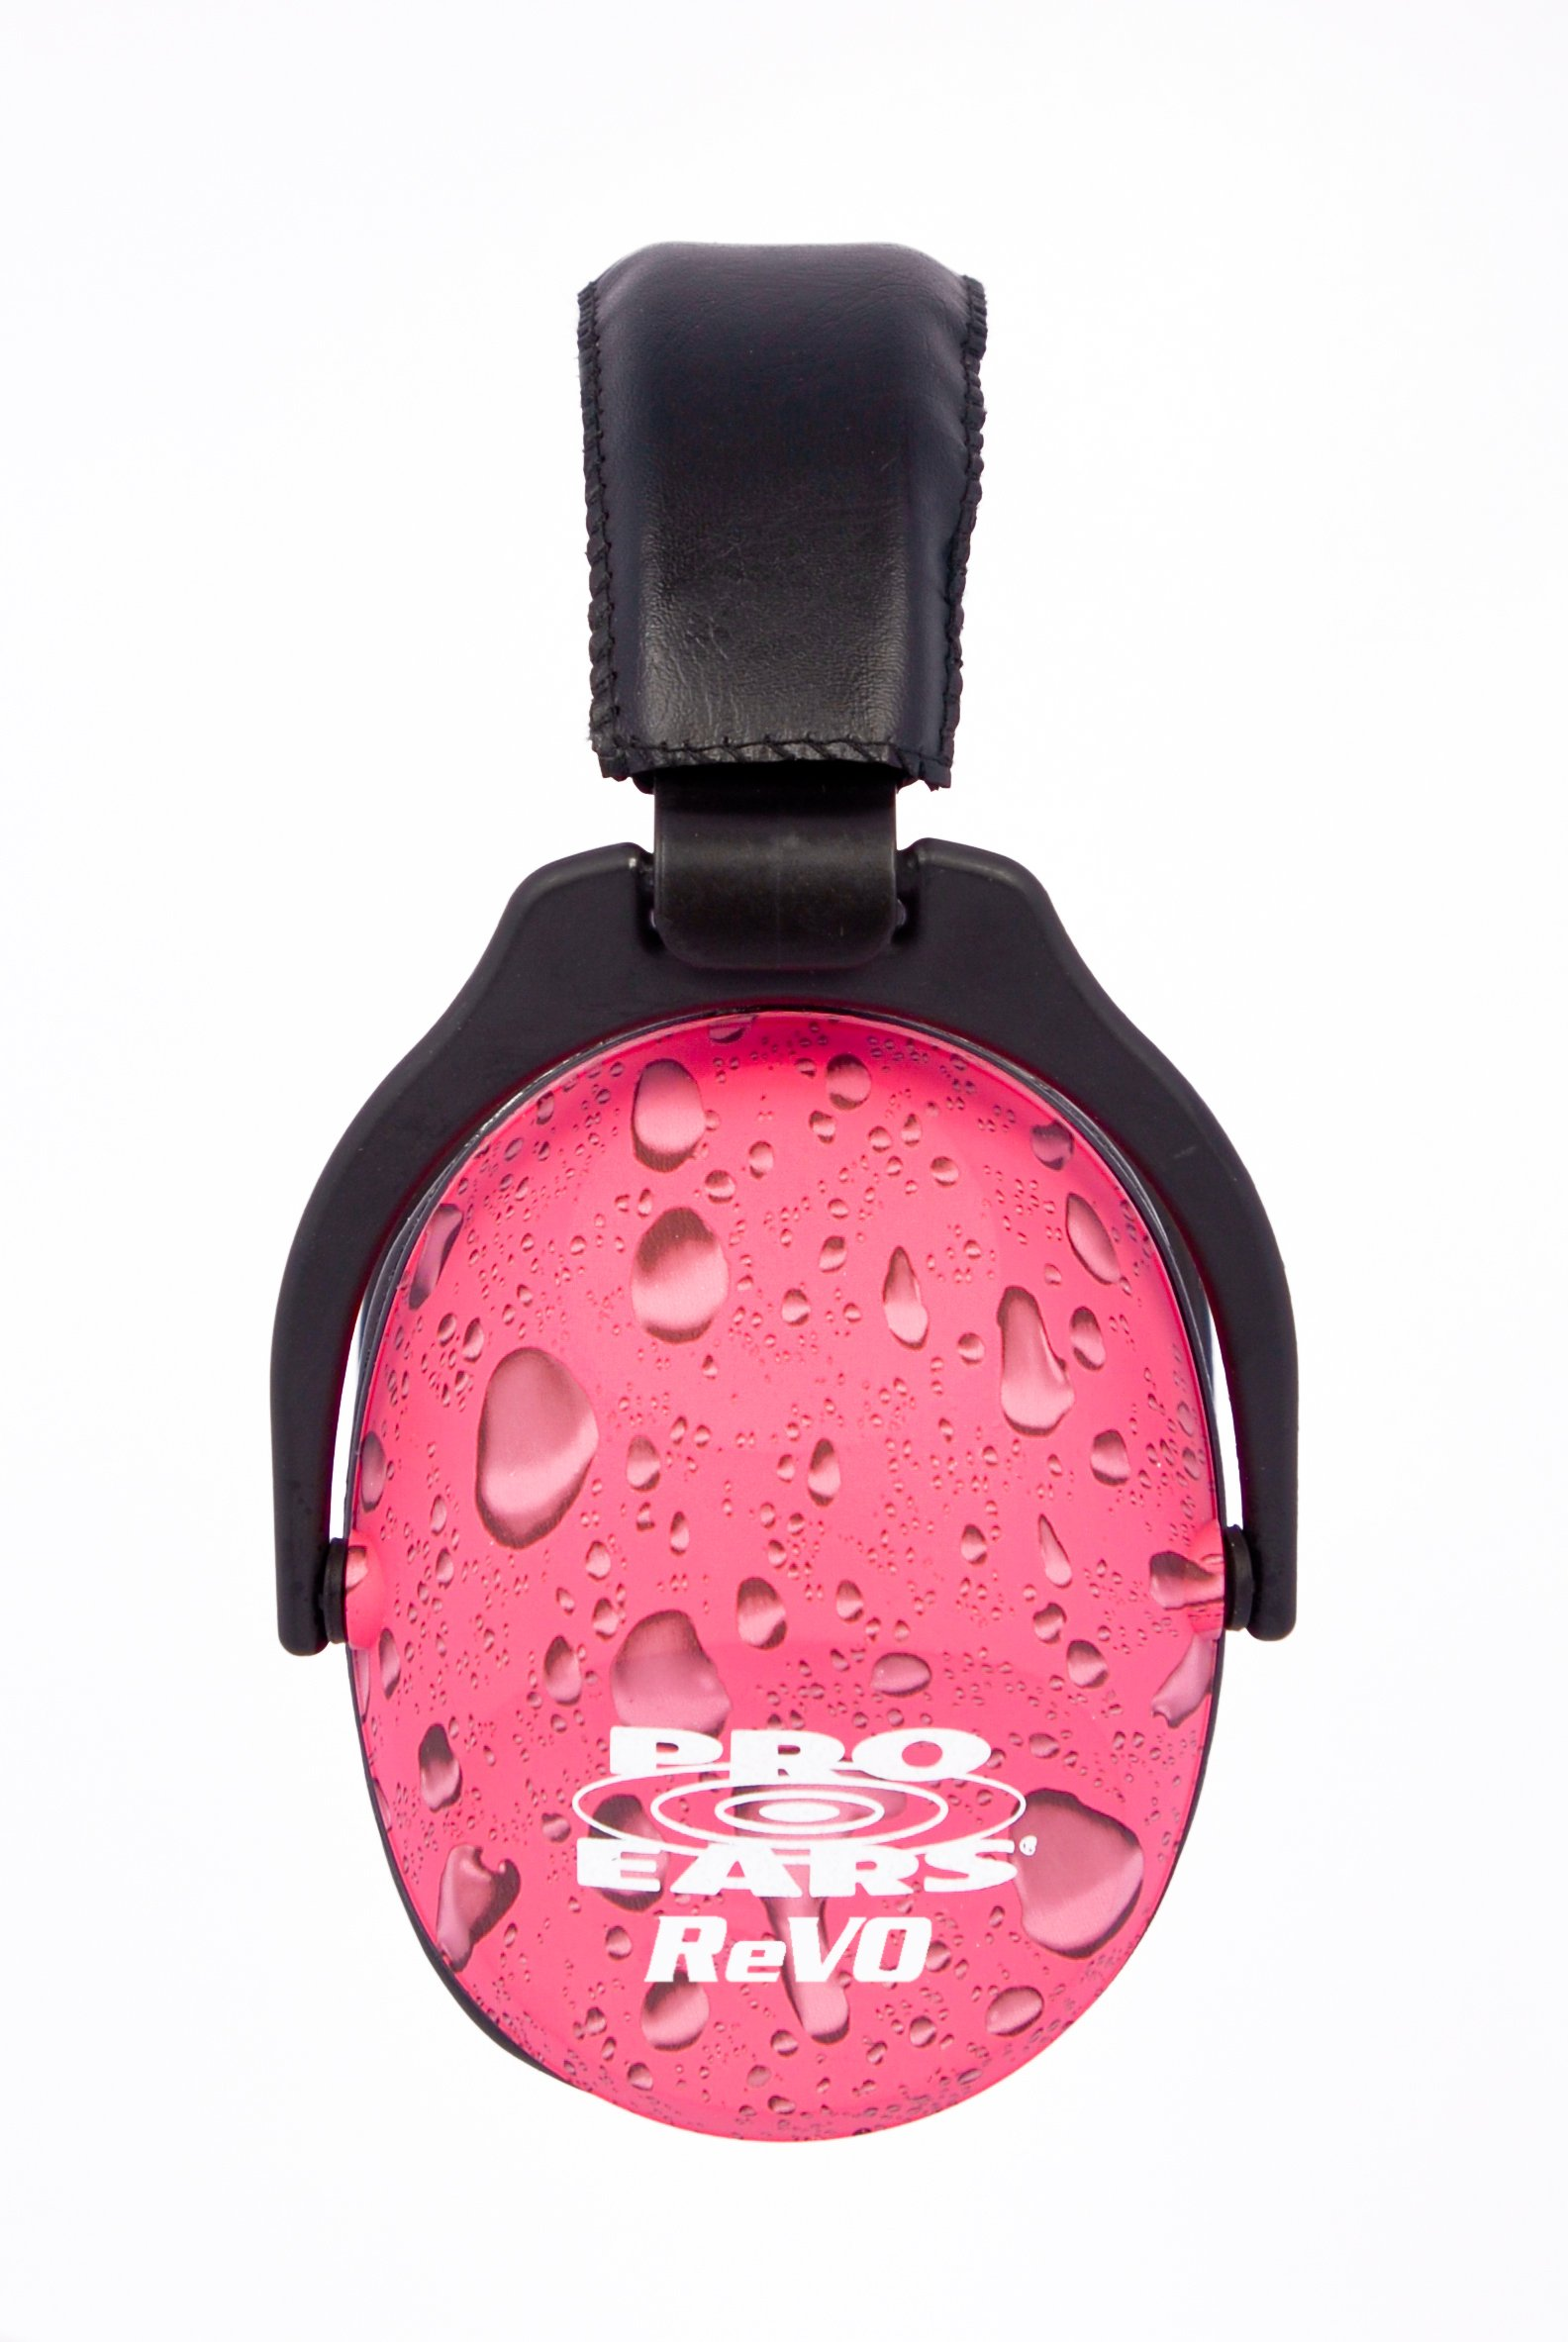 Pro Ears - ReVO - Hearing Protection - NRR 25 - Youth and Women Ear Muffs - Pink Rain by Pro Ears (Image #2)